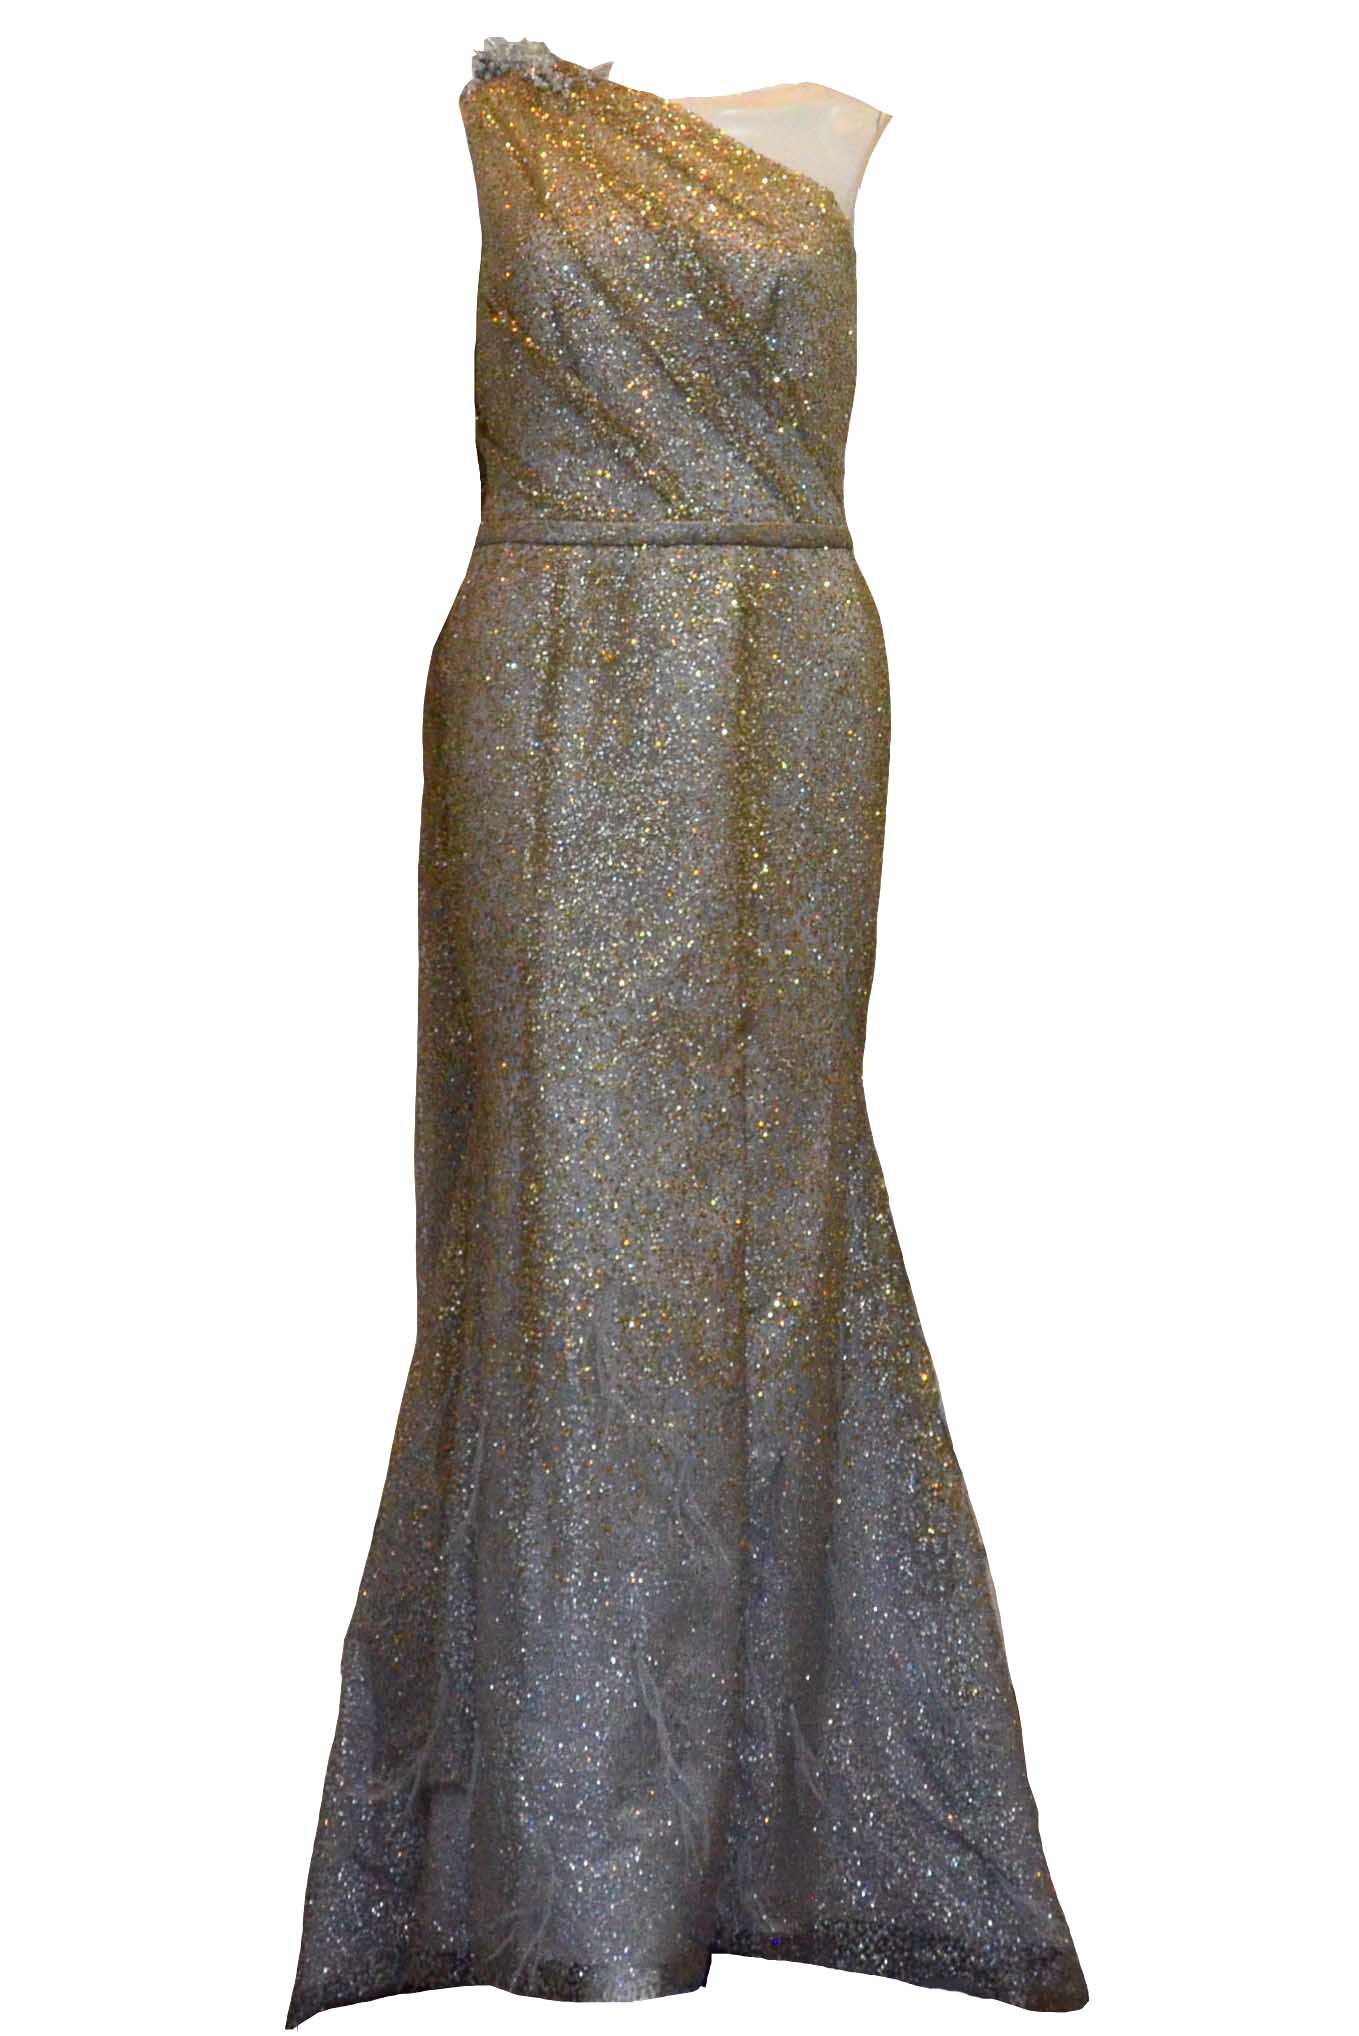 Buy : Rachm Design - Gold One Shoulder Glittery Gown